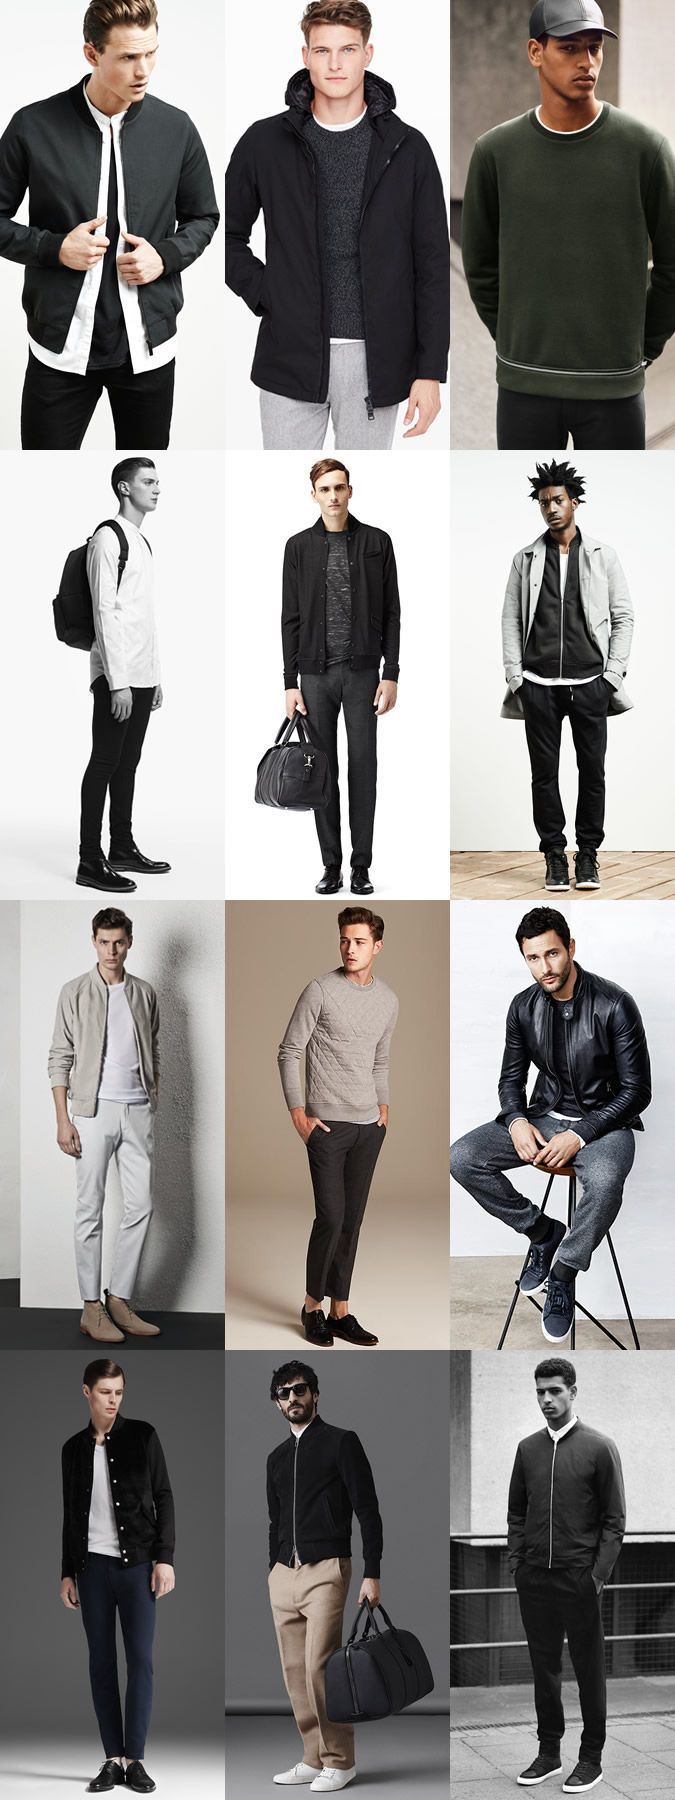 best images about moda masculina on pinterest hamburg ties